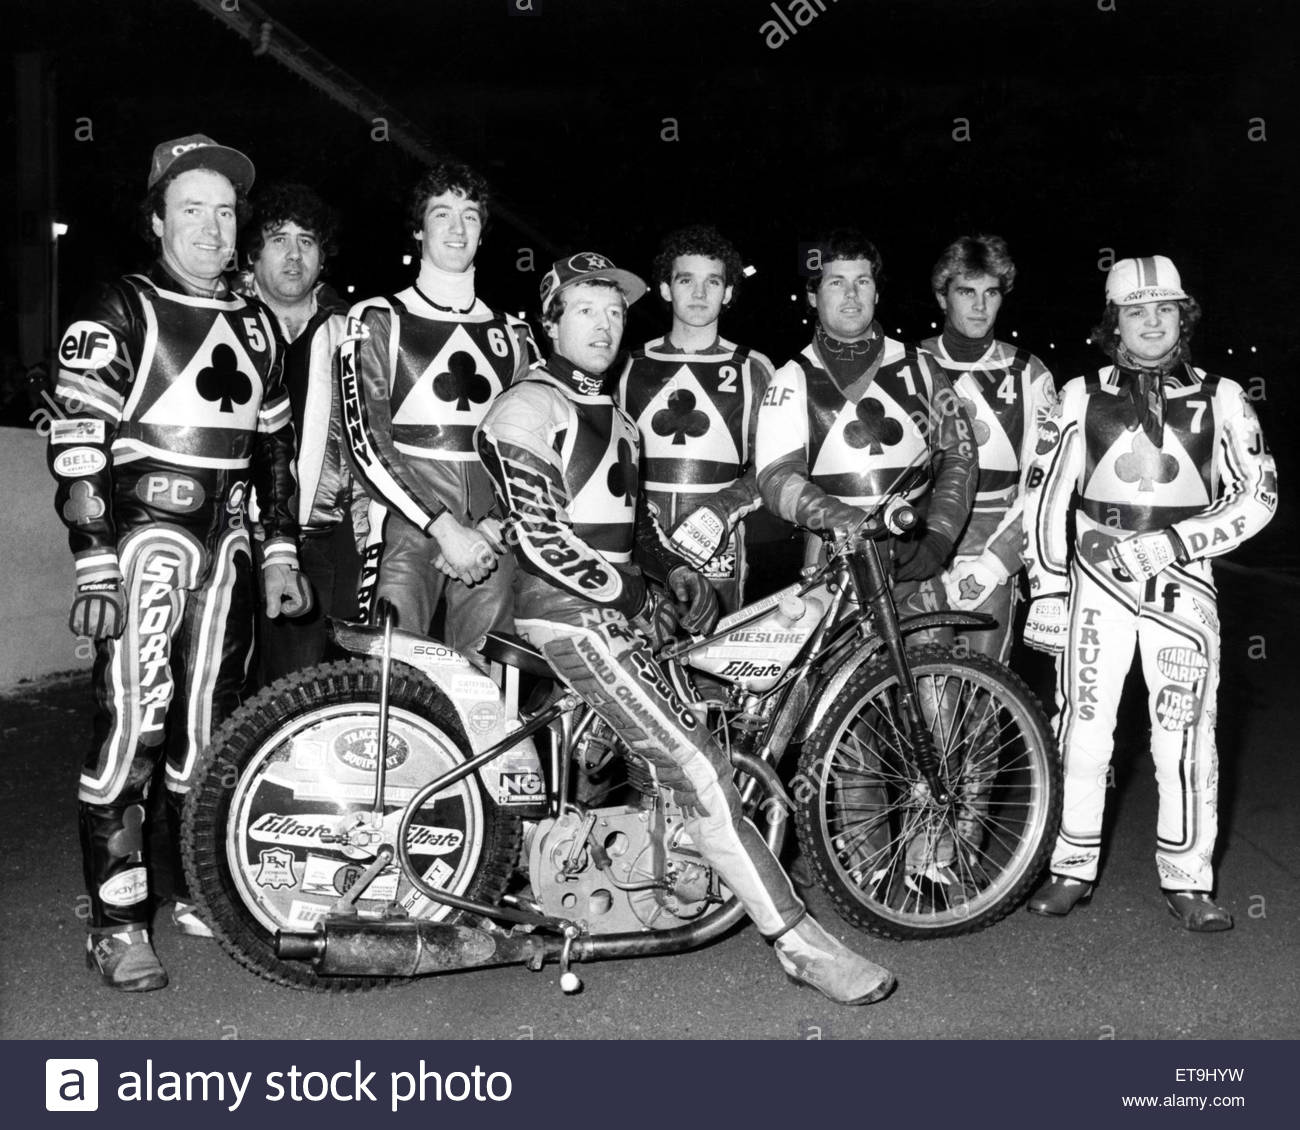 The Belle Vue Aces speedway team for the new season. Circa 1984. - Stock Image